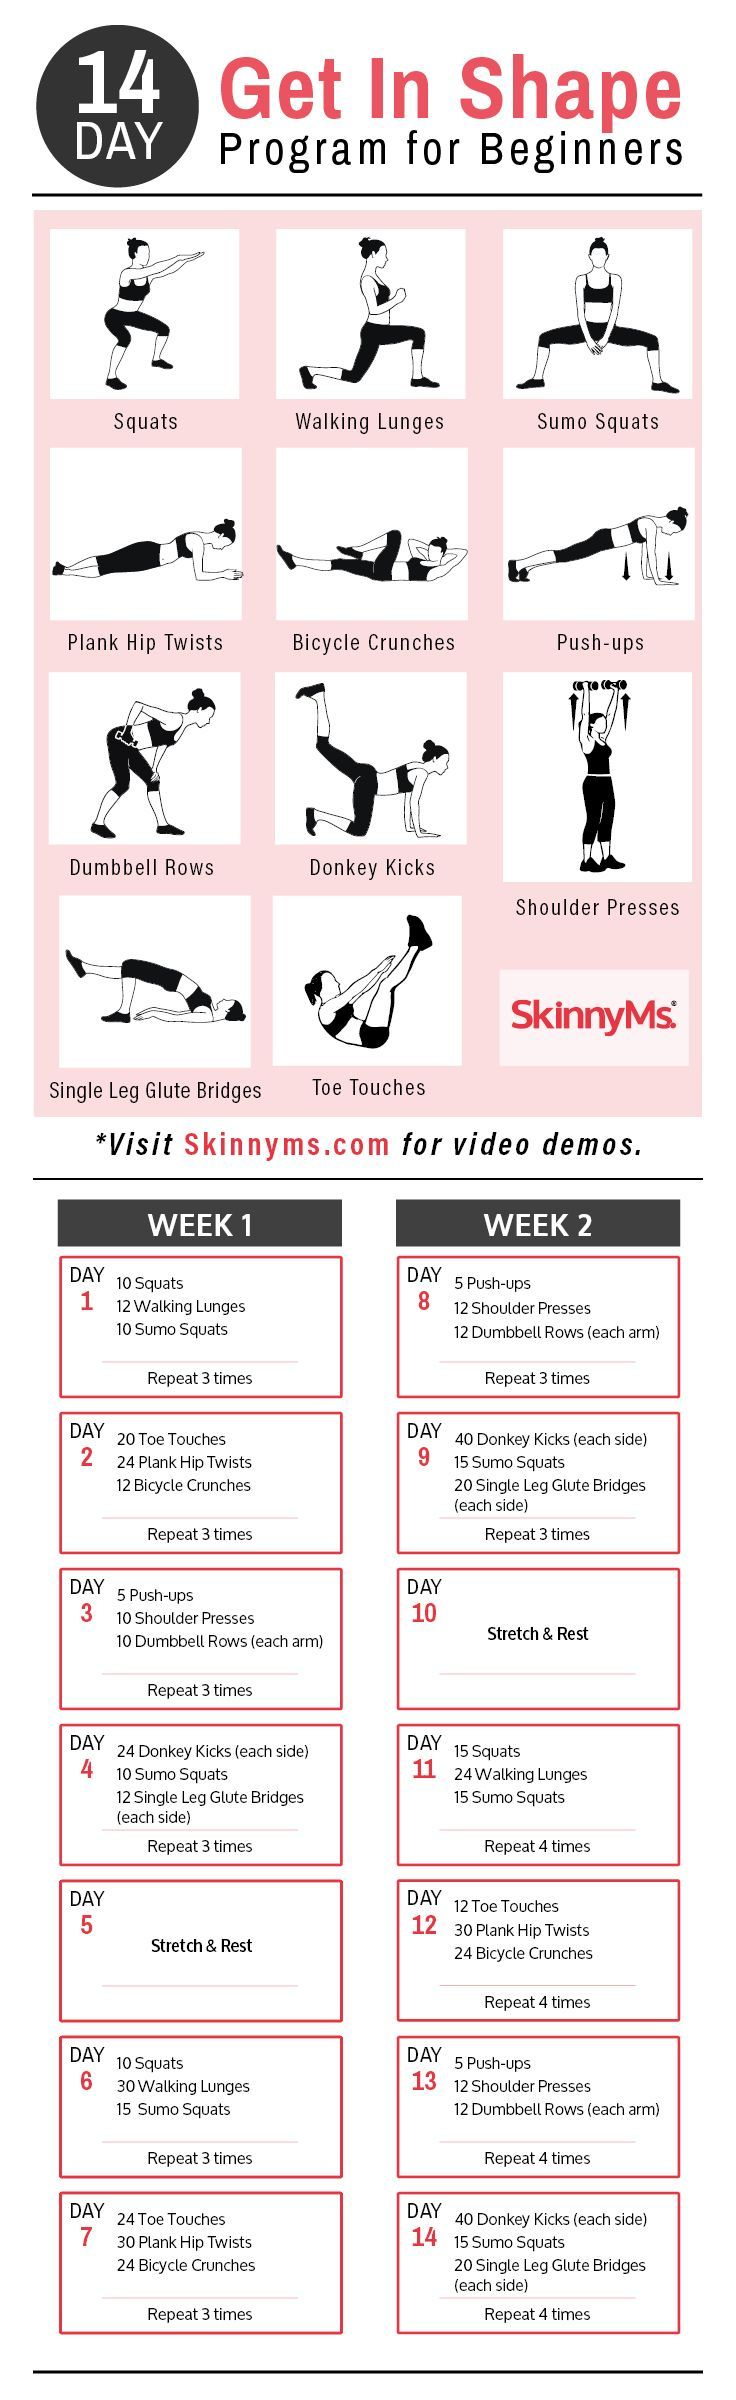 14-Day Get In Shape Program for Beginners